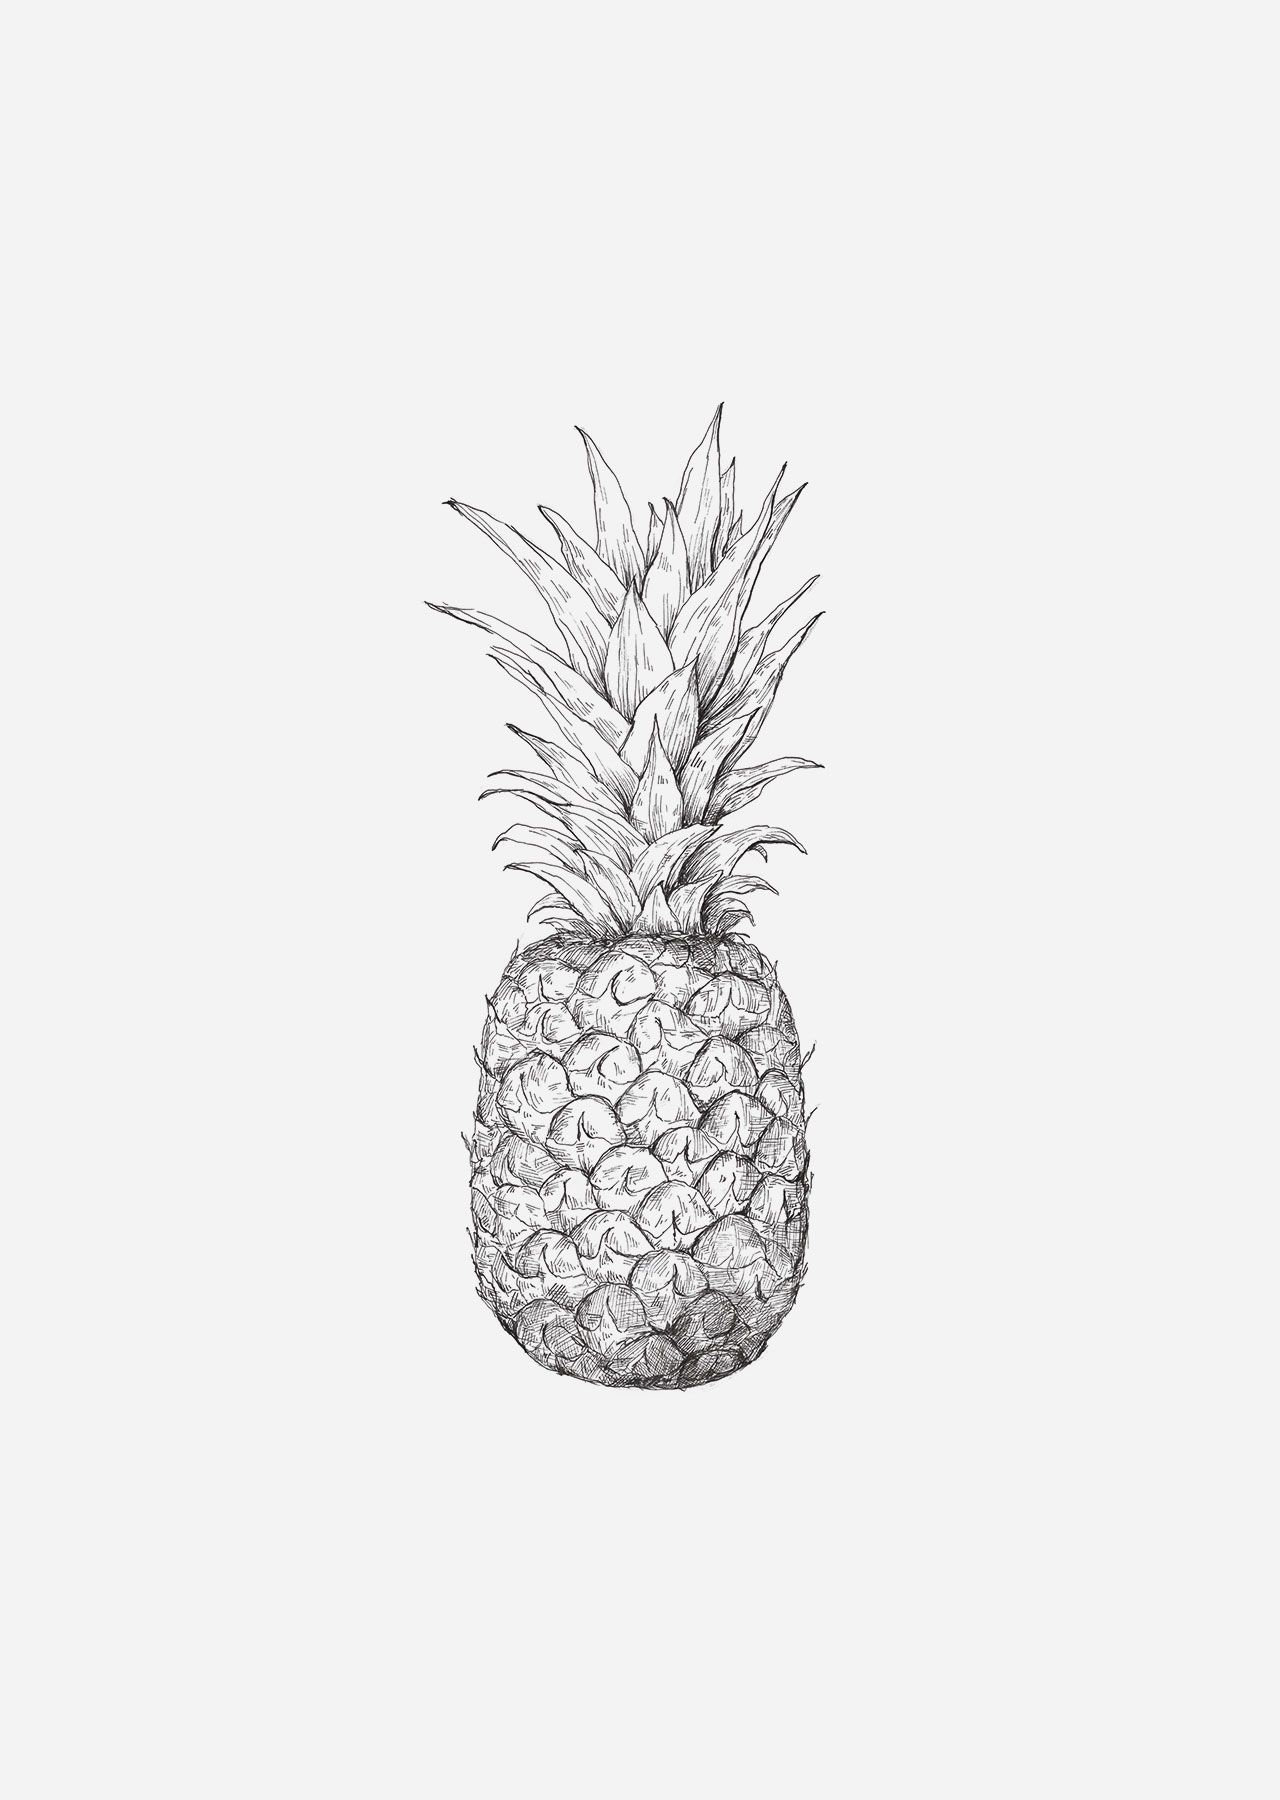 pineapple drawing pineapple in 2020 whimsical art drawings plant drawing drawing pineapple